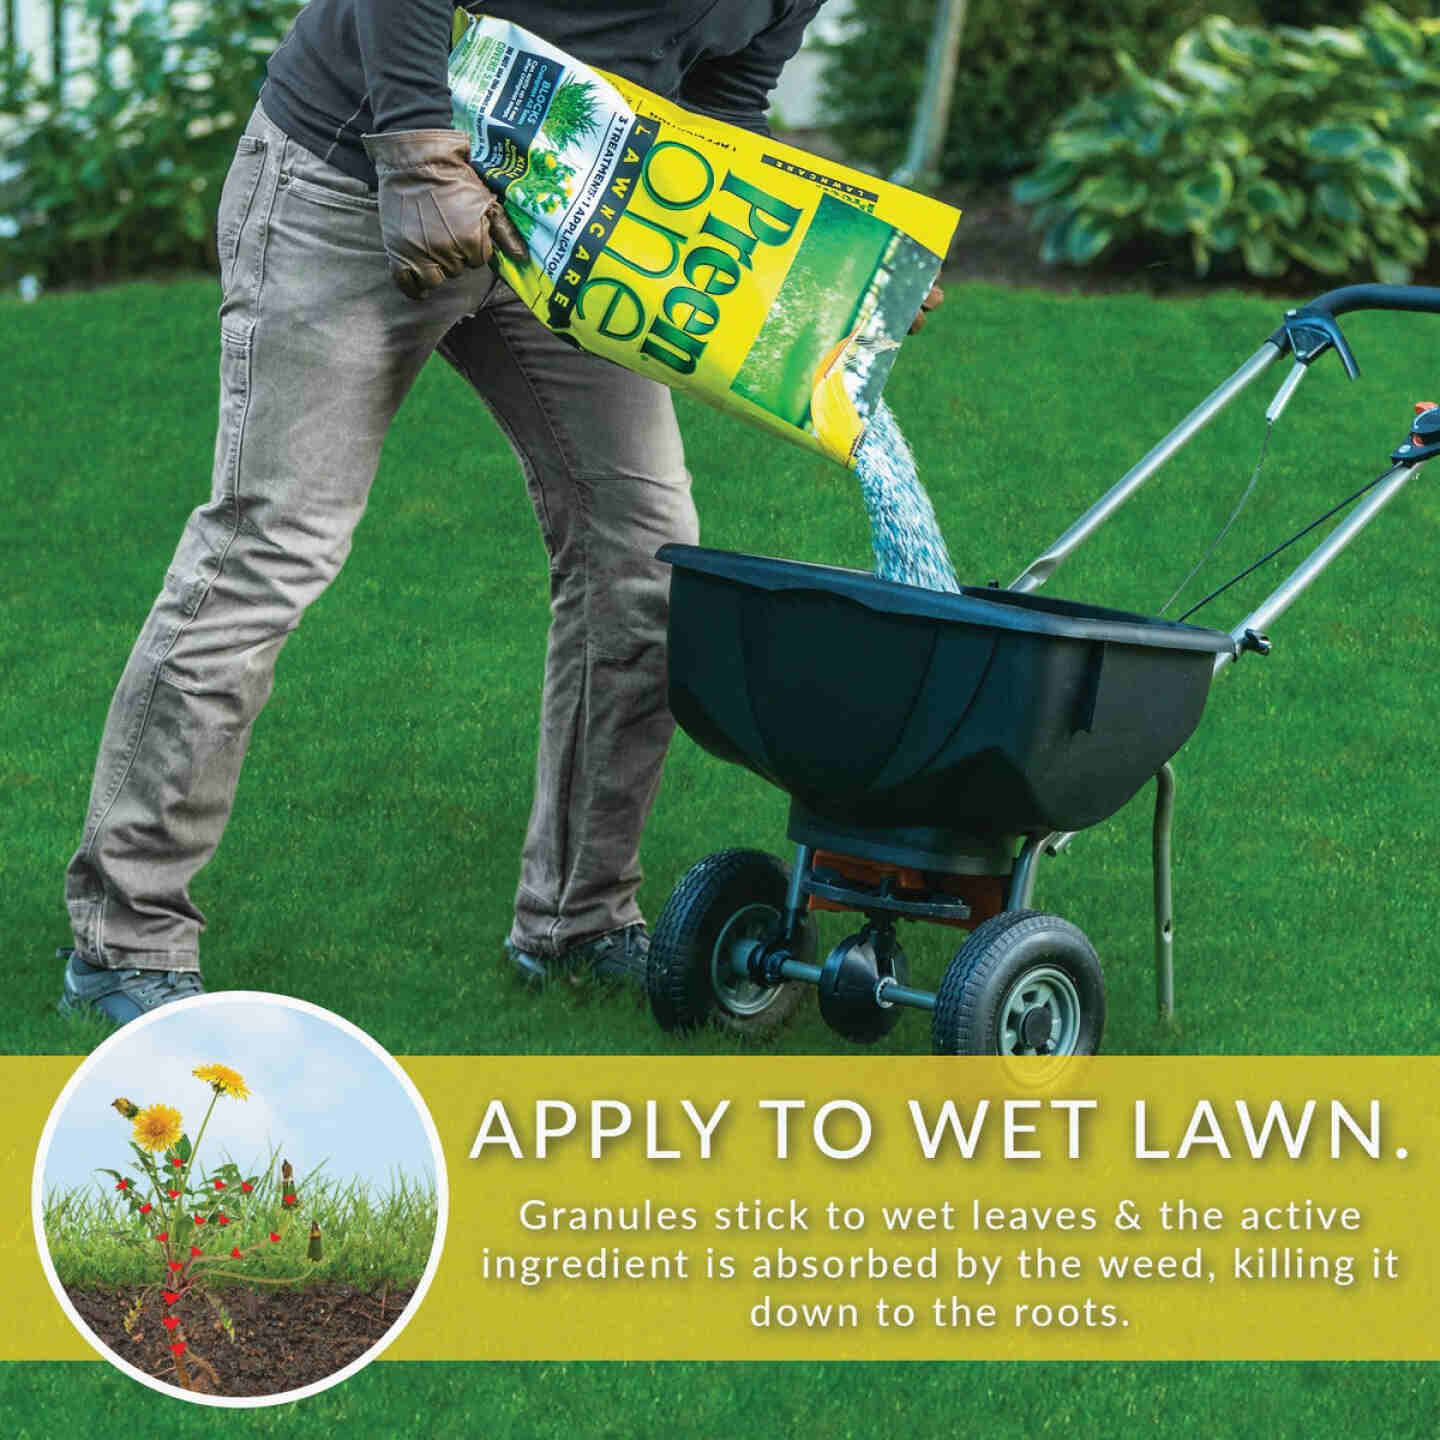 Preen One Lawn Care 18 Lb. Ready To Use Granules Weed Killer with Fertilizer Image 6